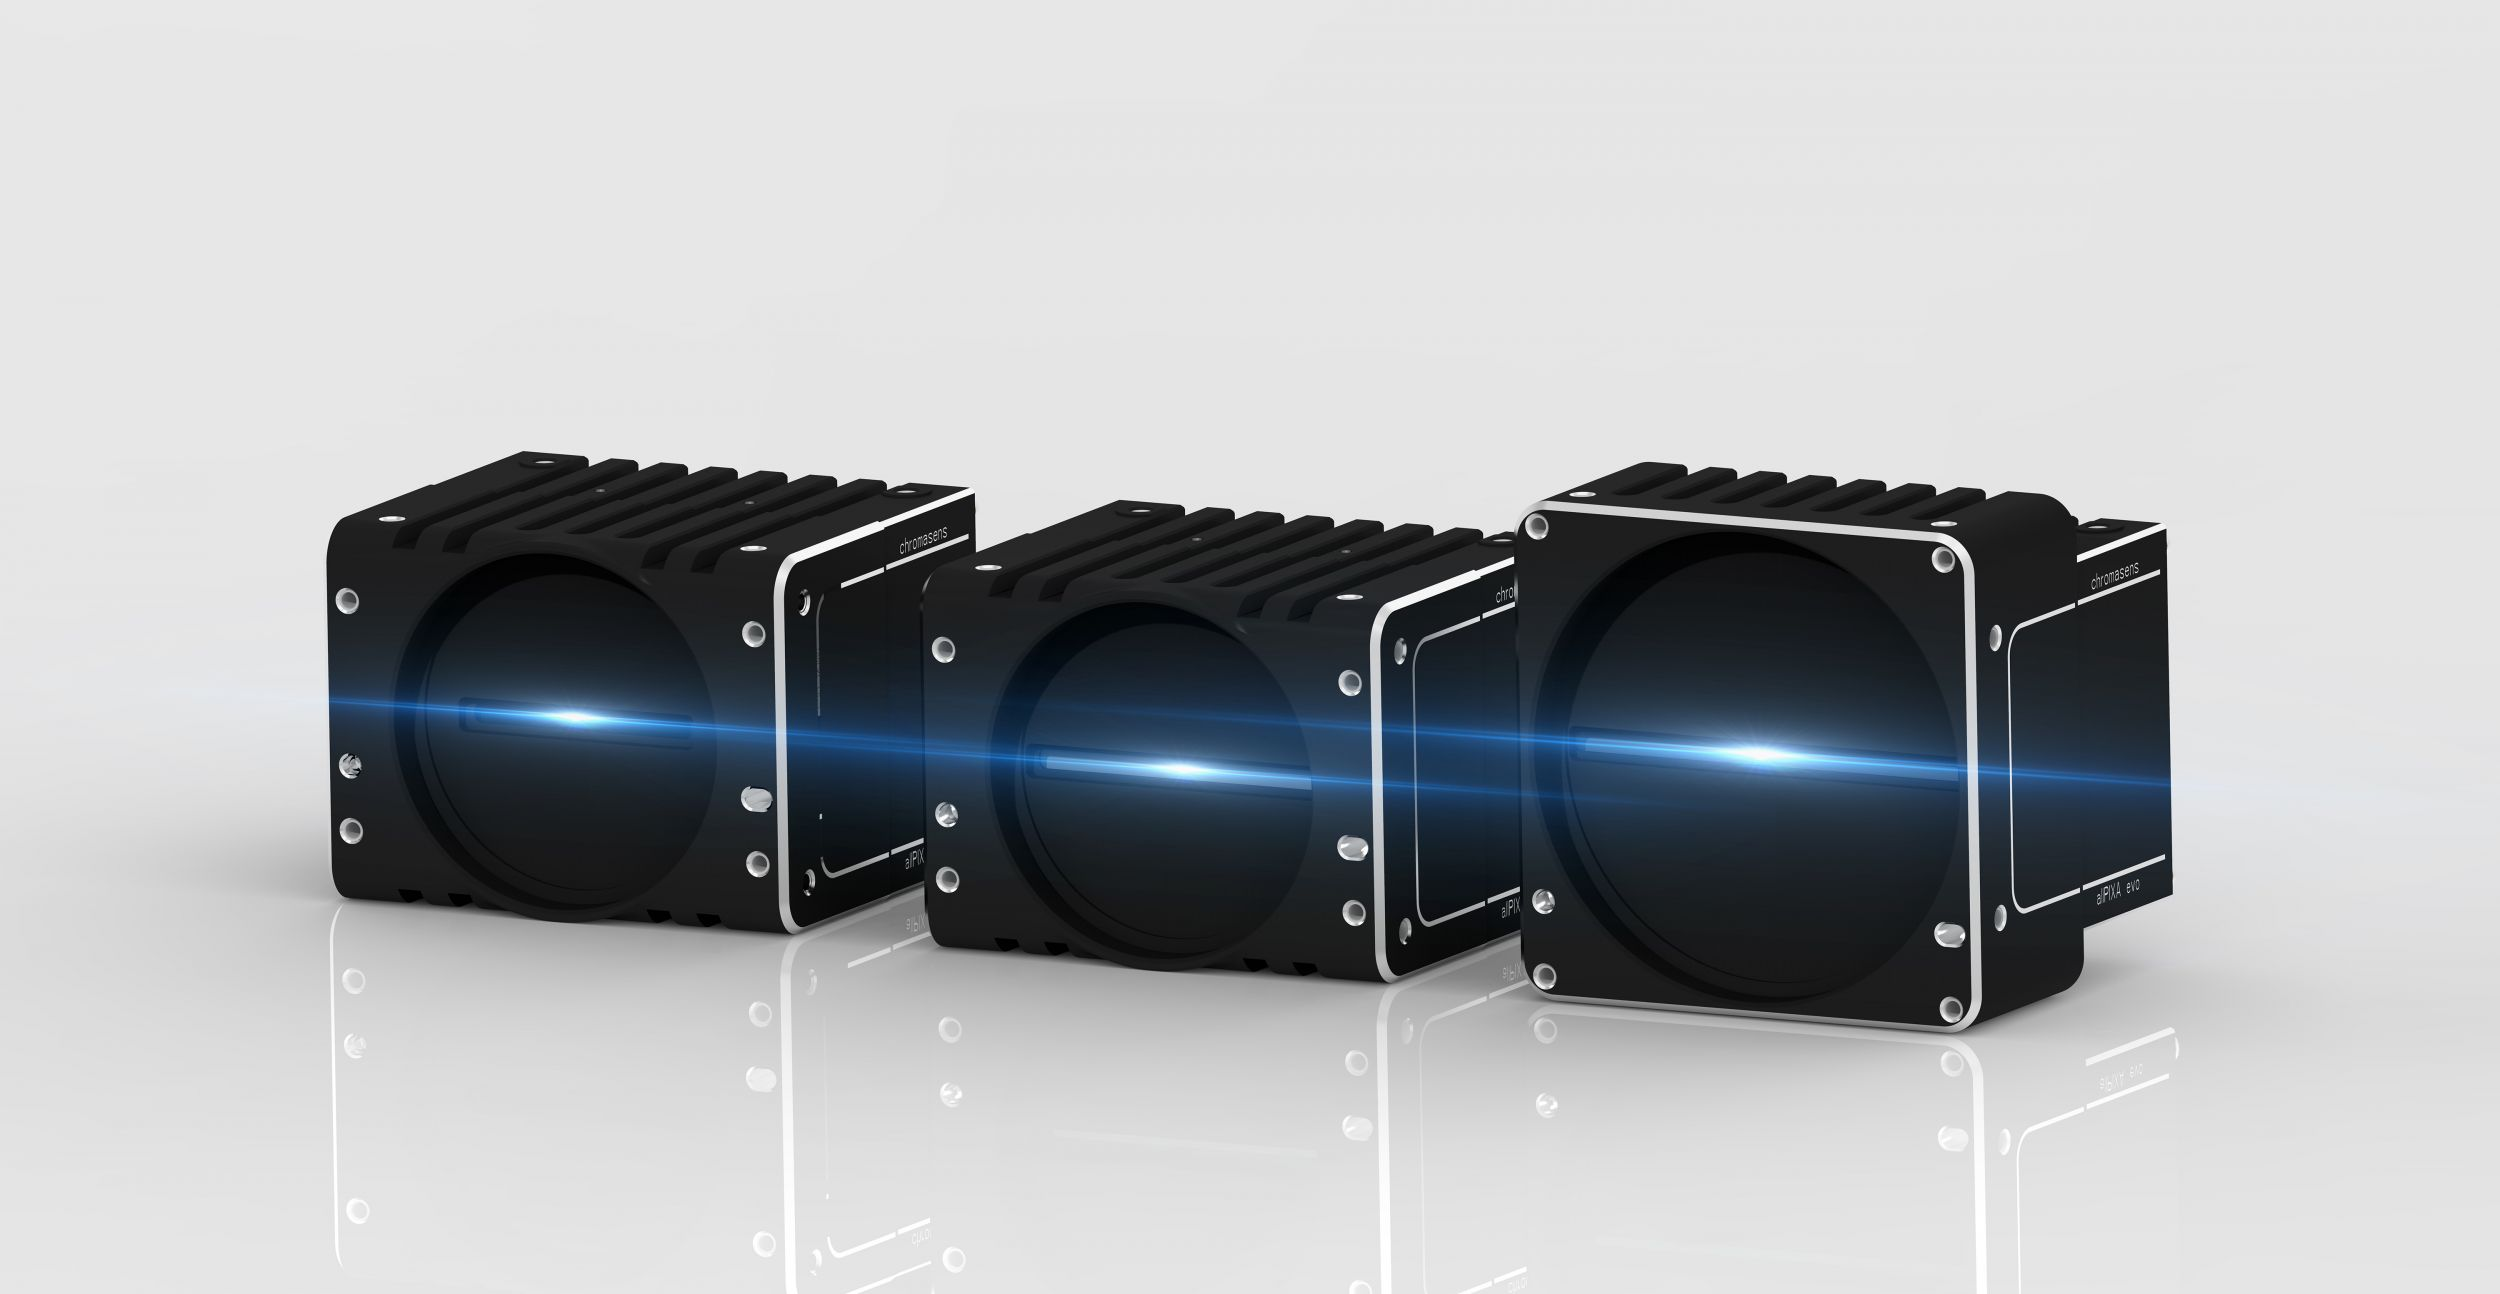 8K, 10K and 15K Line-scan Cameras with CXP 2.0